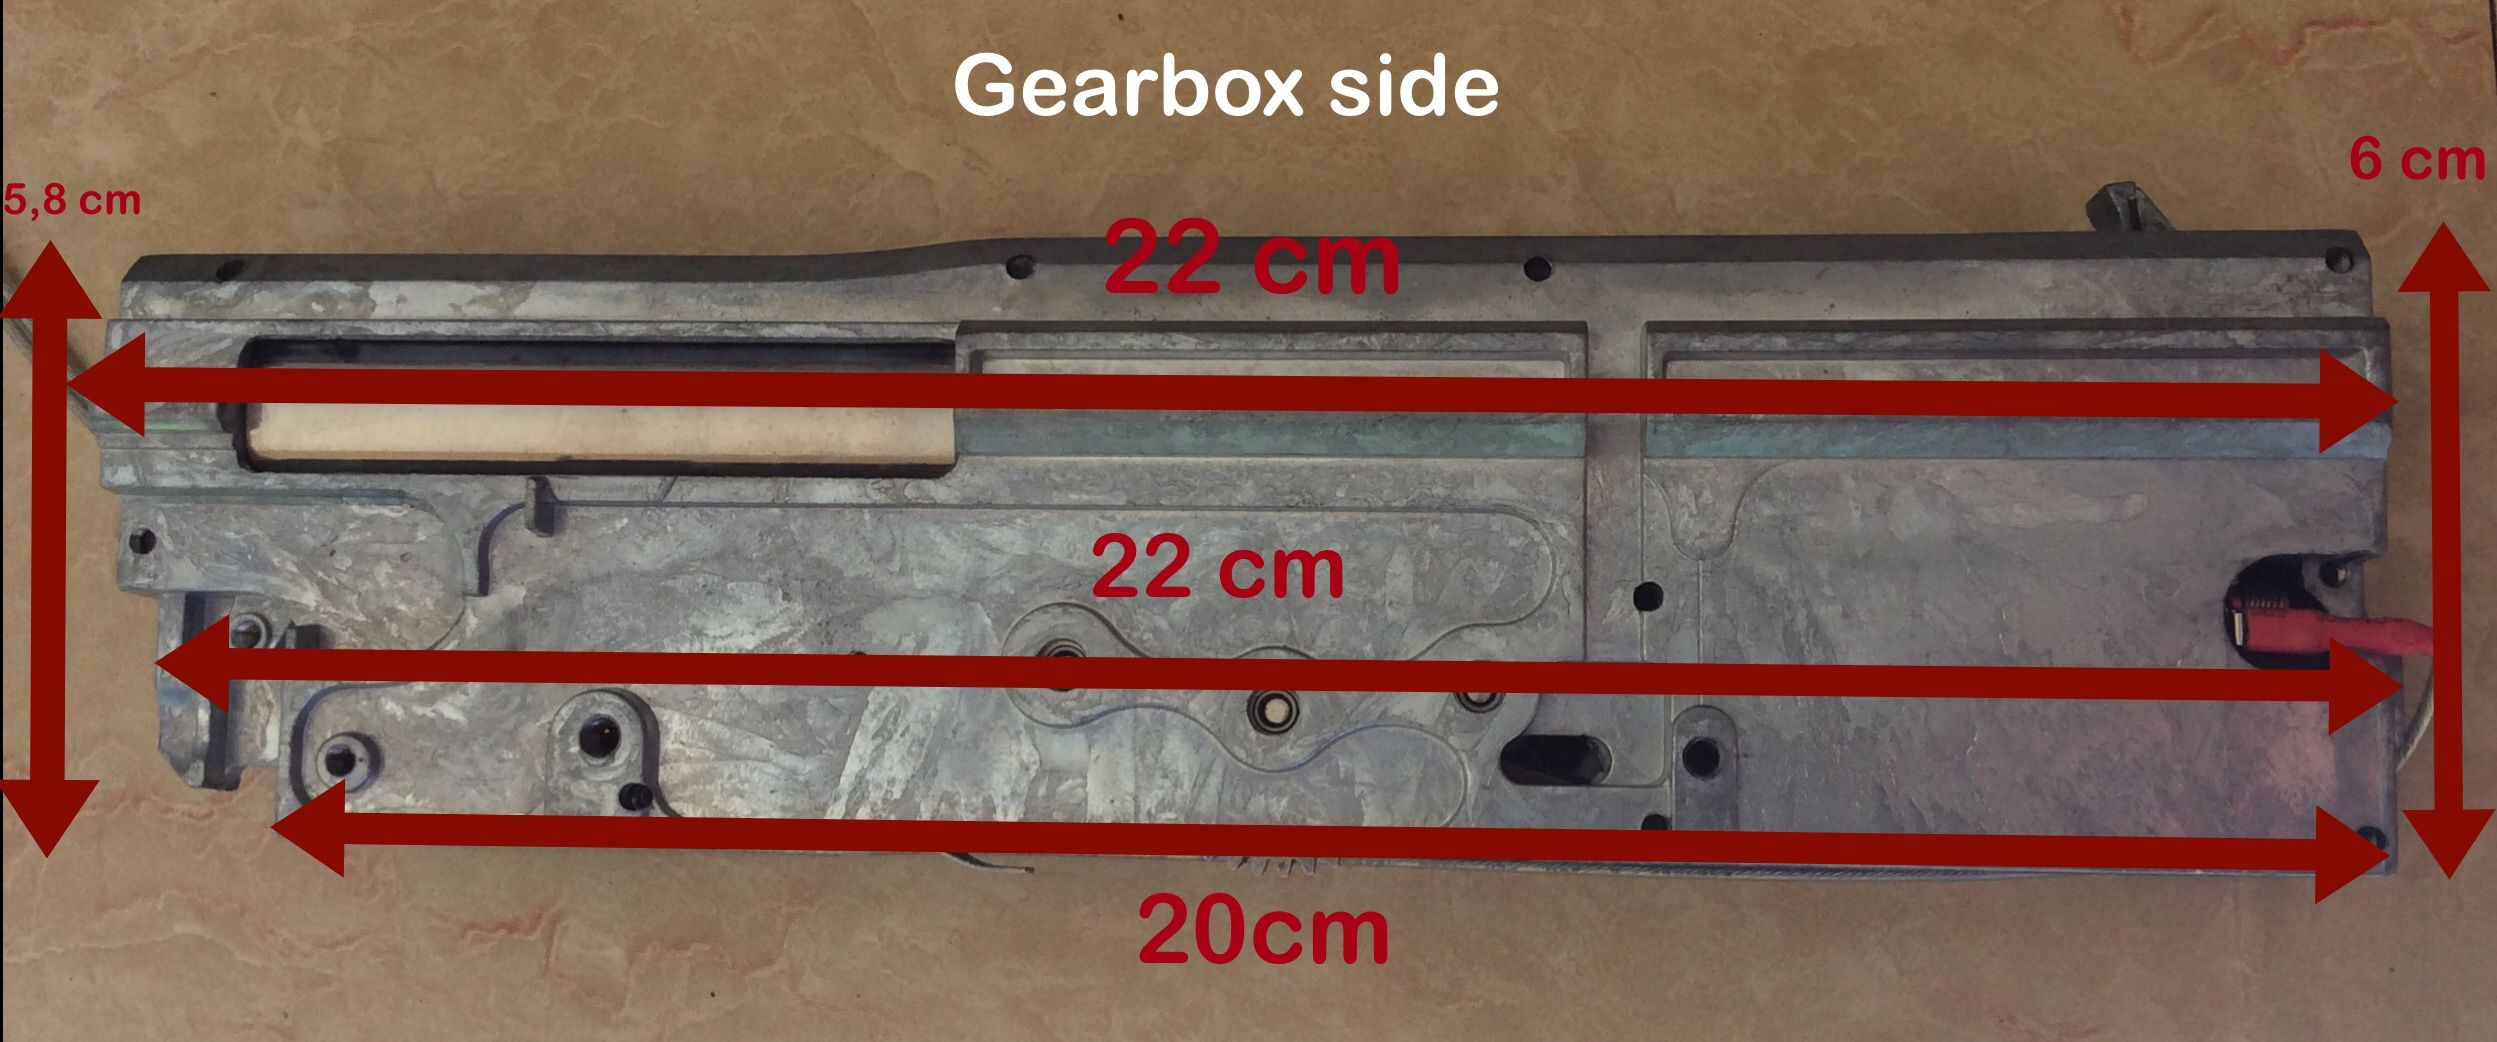 Matrix (S&T/AGM) MG42 - In-depth Look / Upgrade Blog - Page